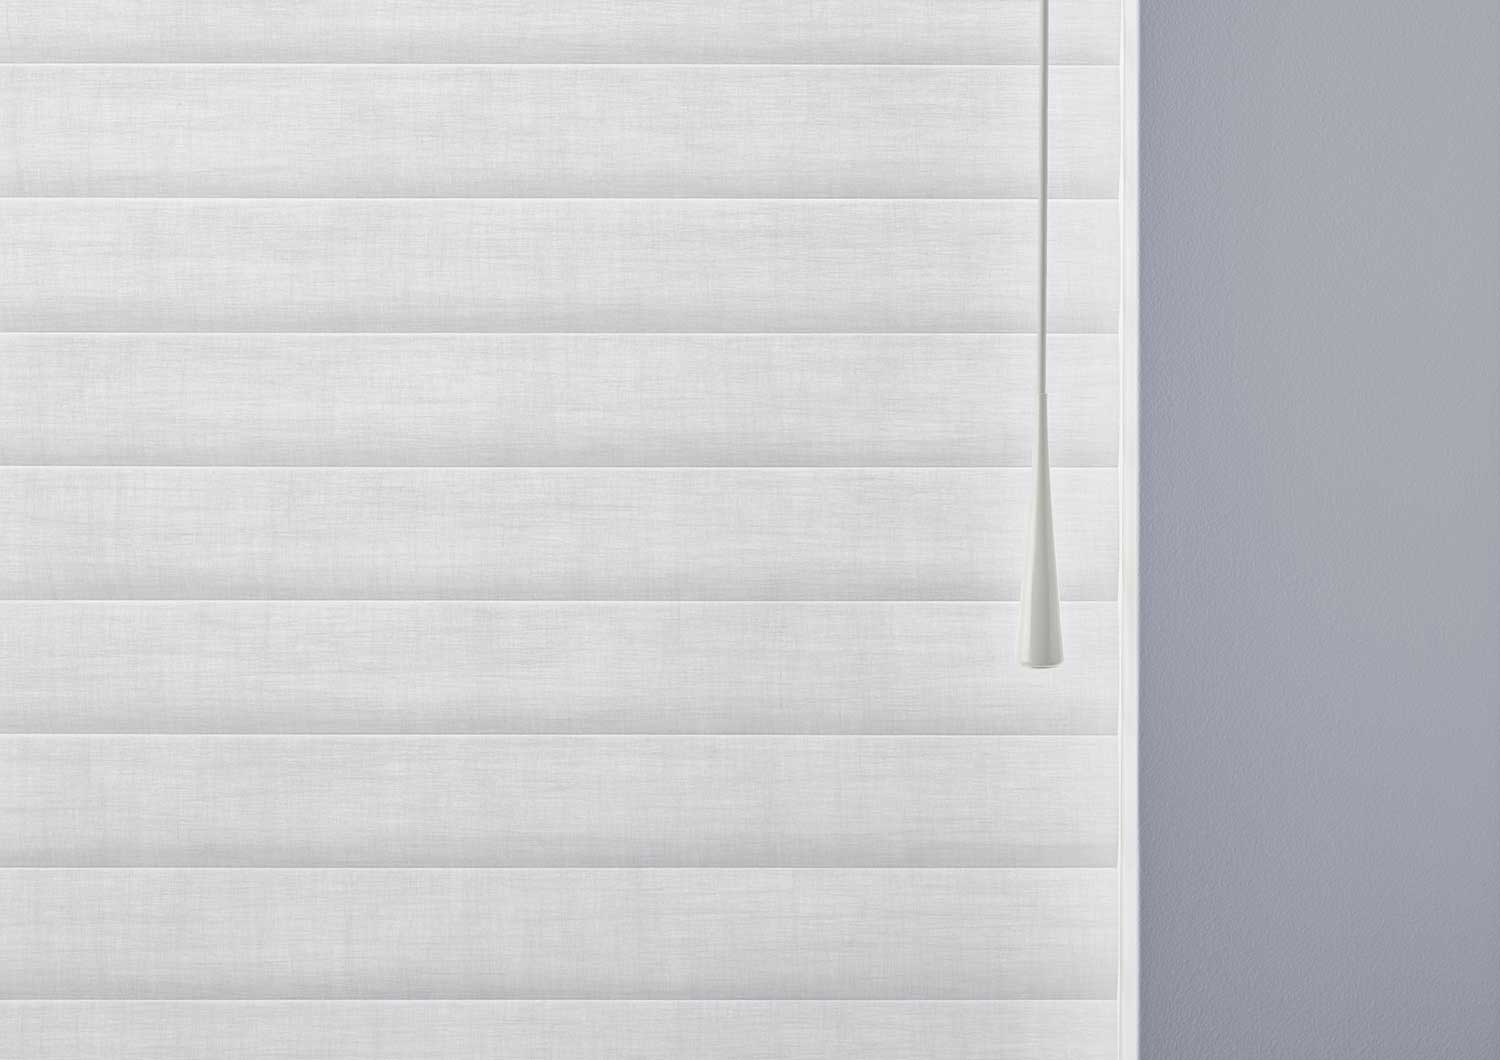 Sonnette Cellular Roller Shades on a window.